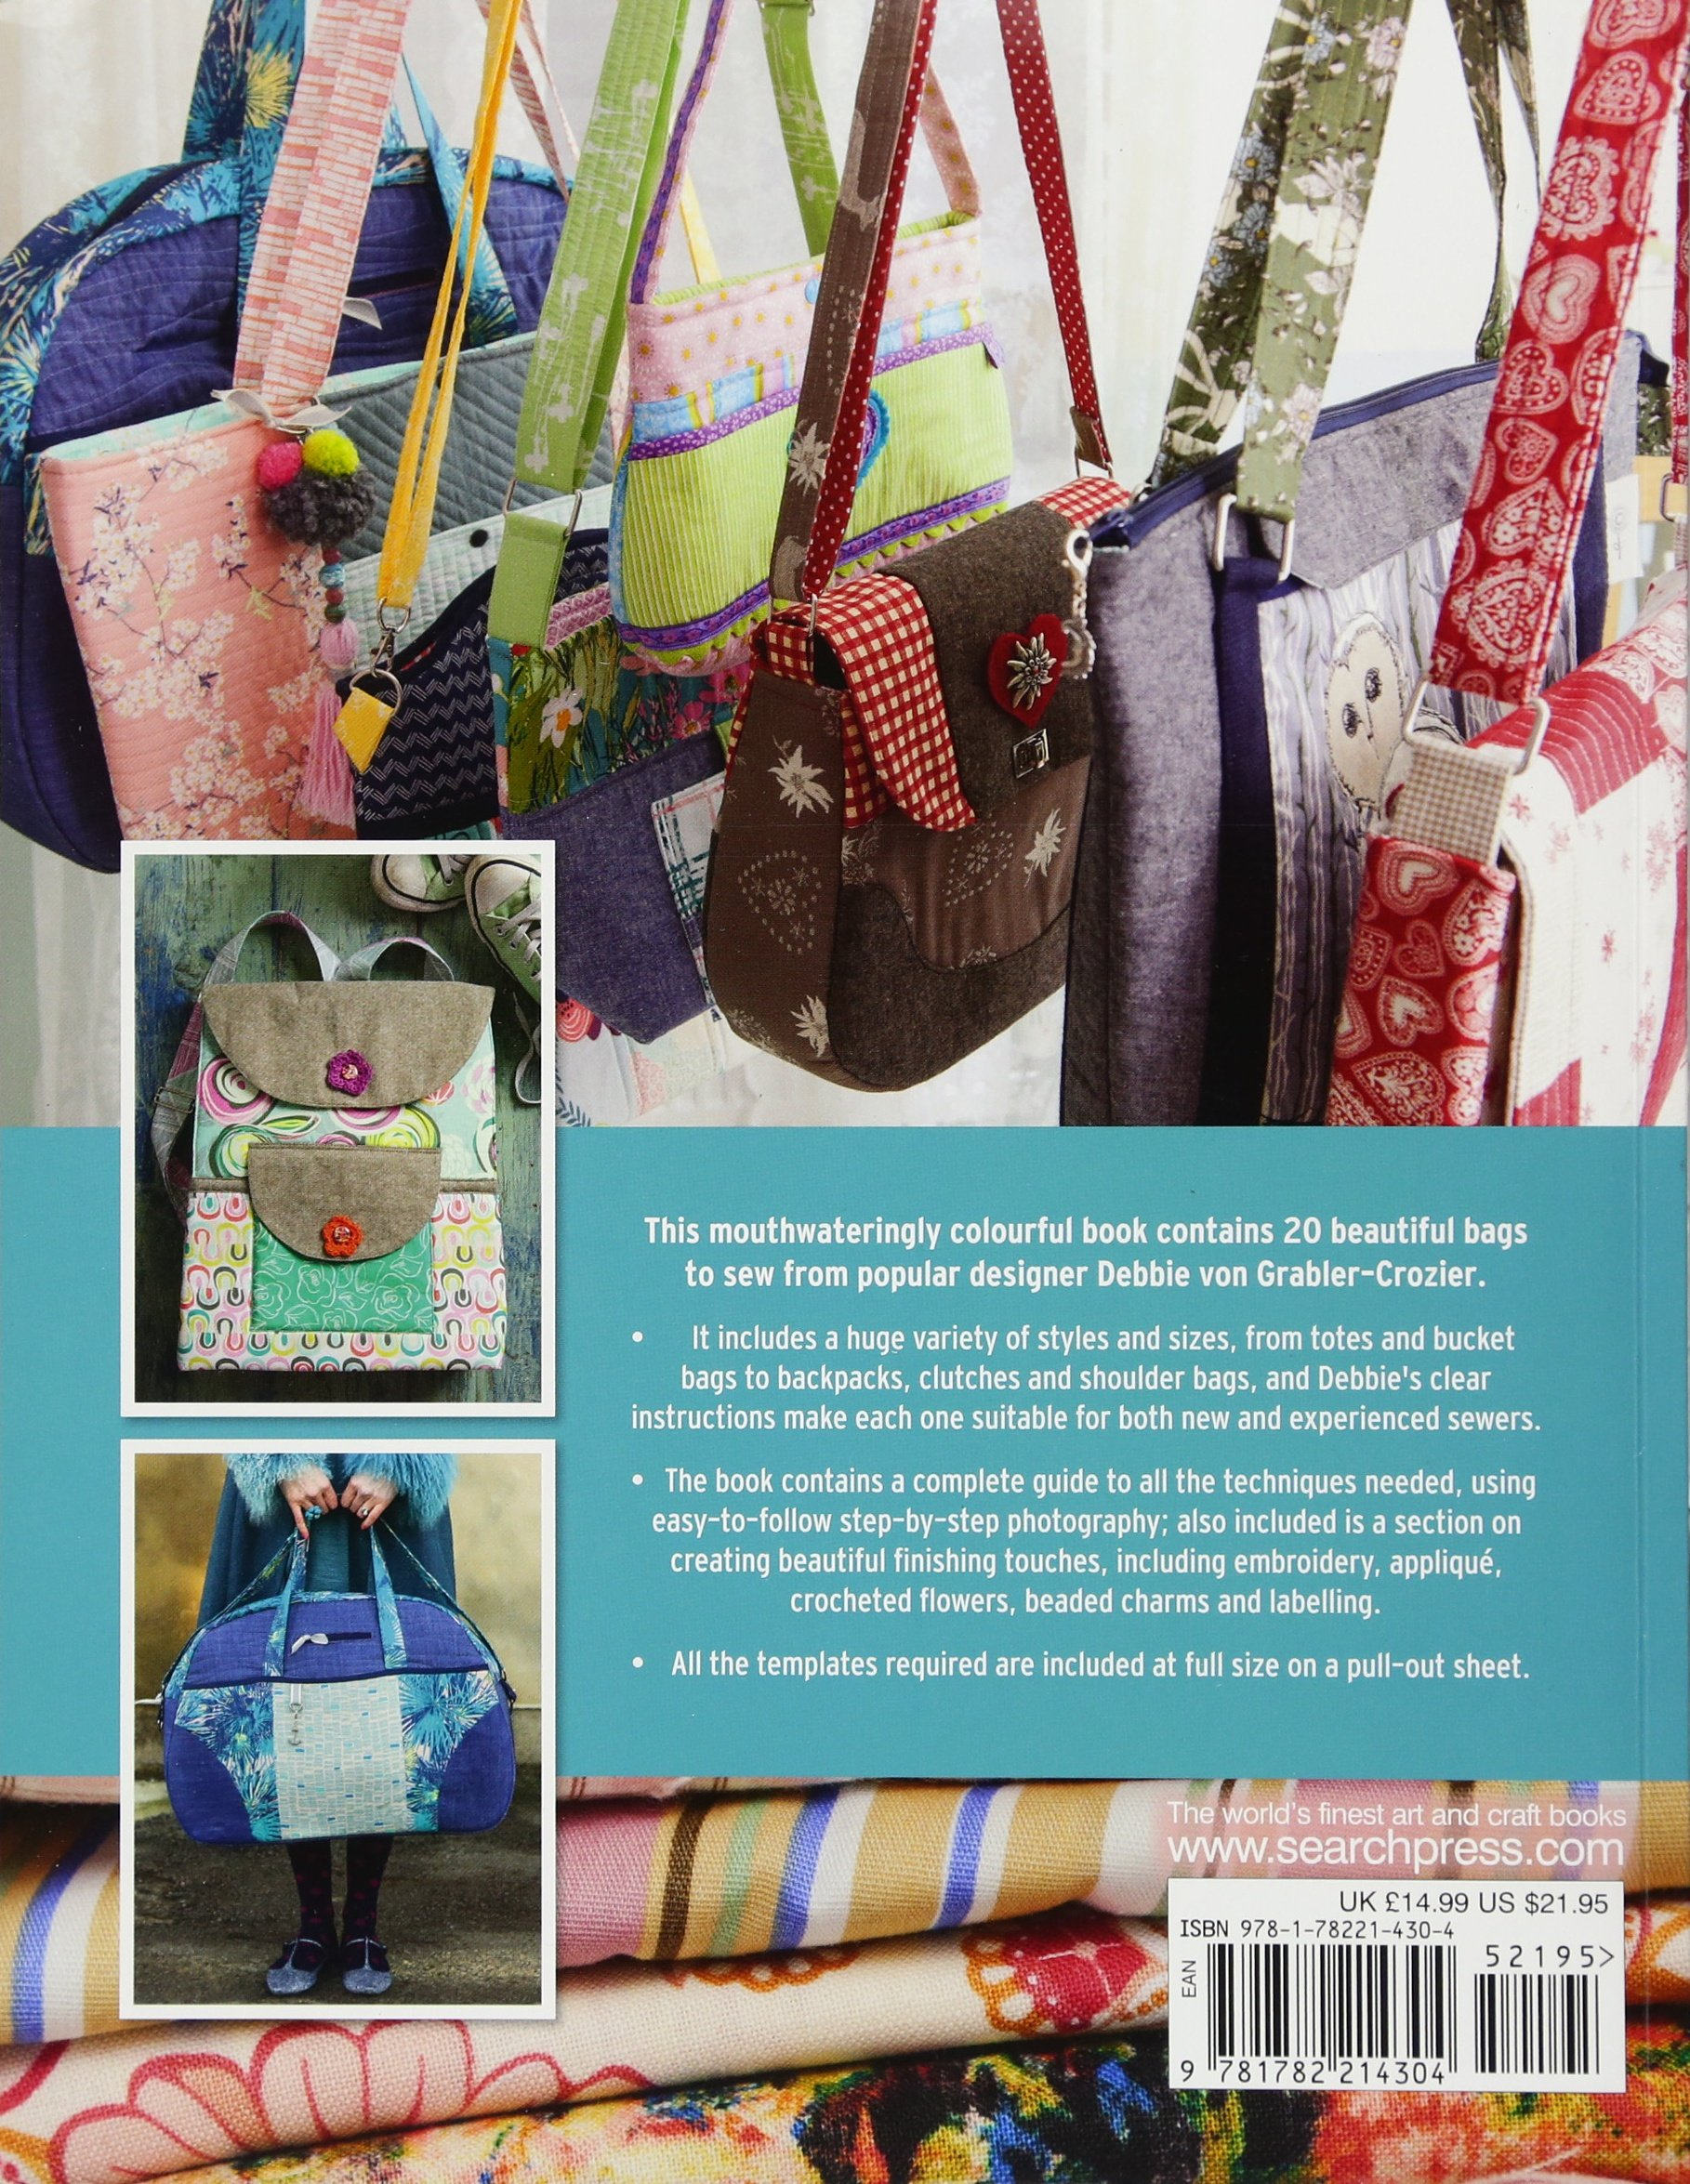 The Bag Boutique  20 Bright and Beautiful Bags to Sew  Amazon.co.uk  Debbie  von Grabler-Crozier  9781782214304  Books f0915b560cc61